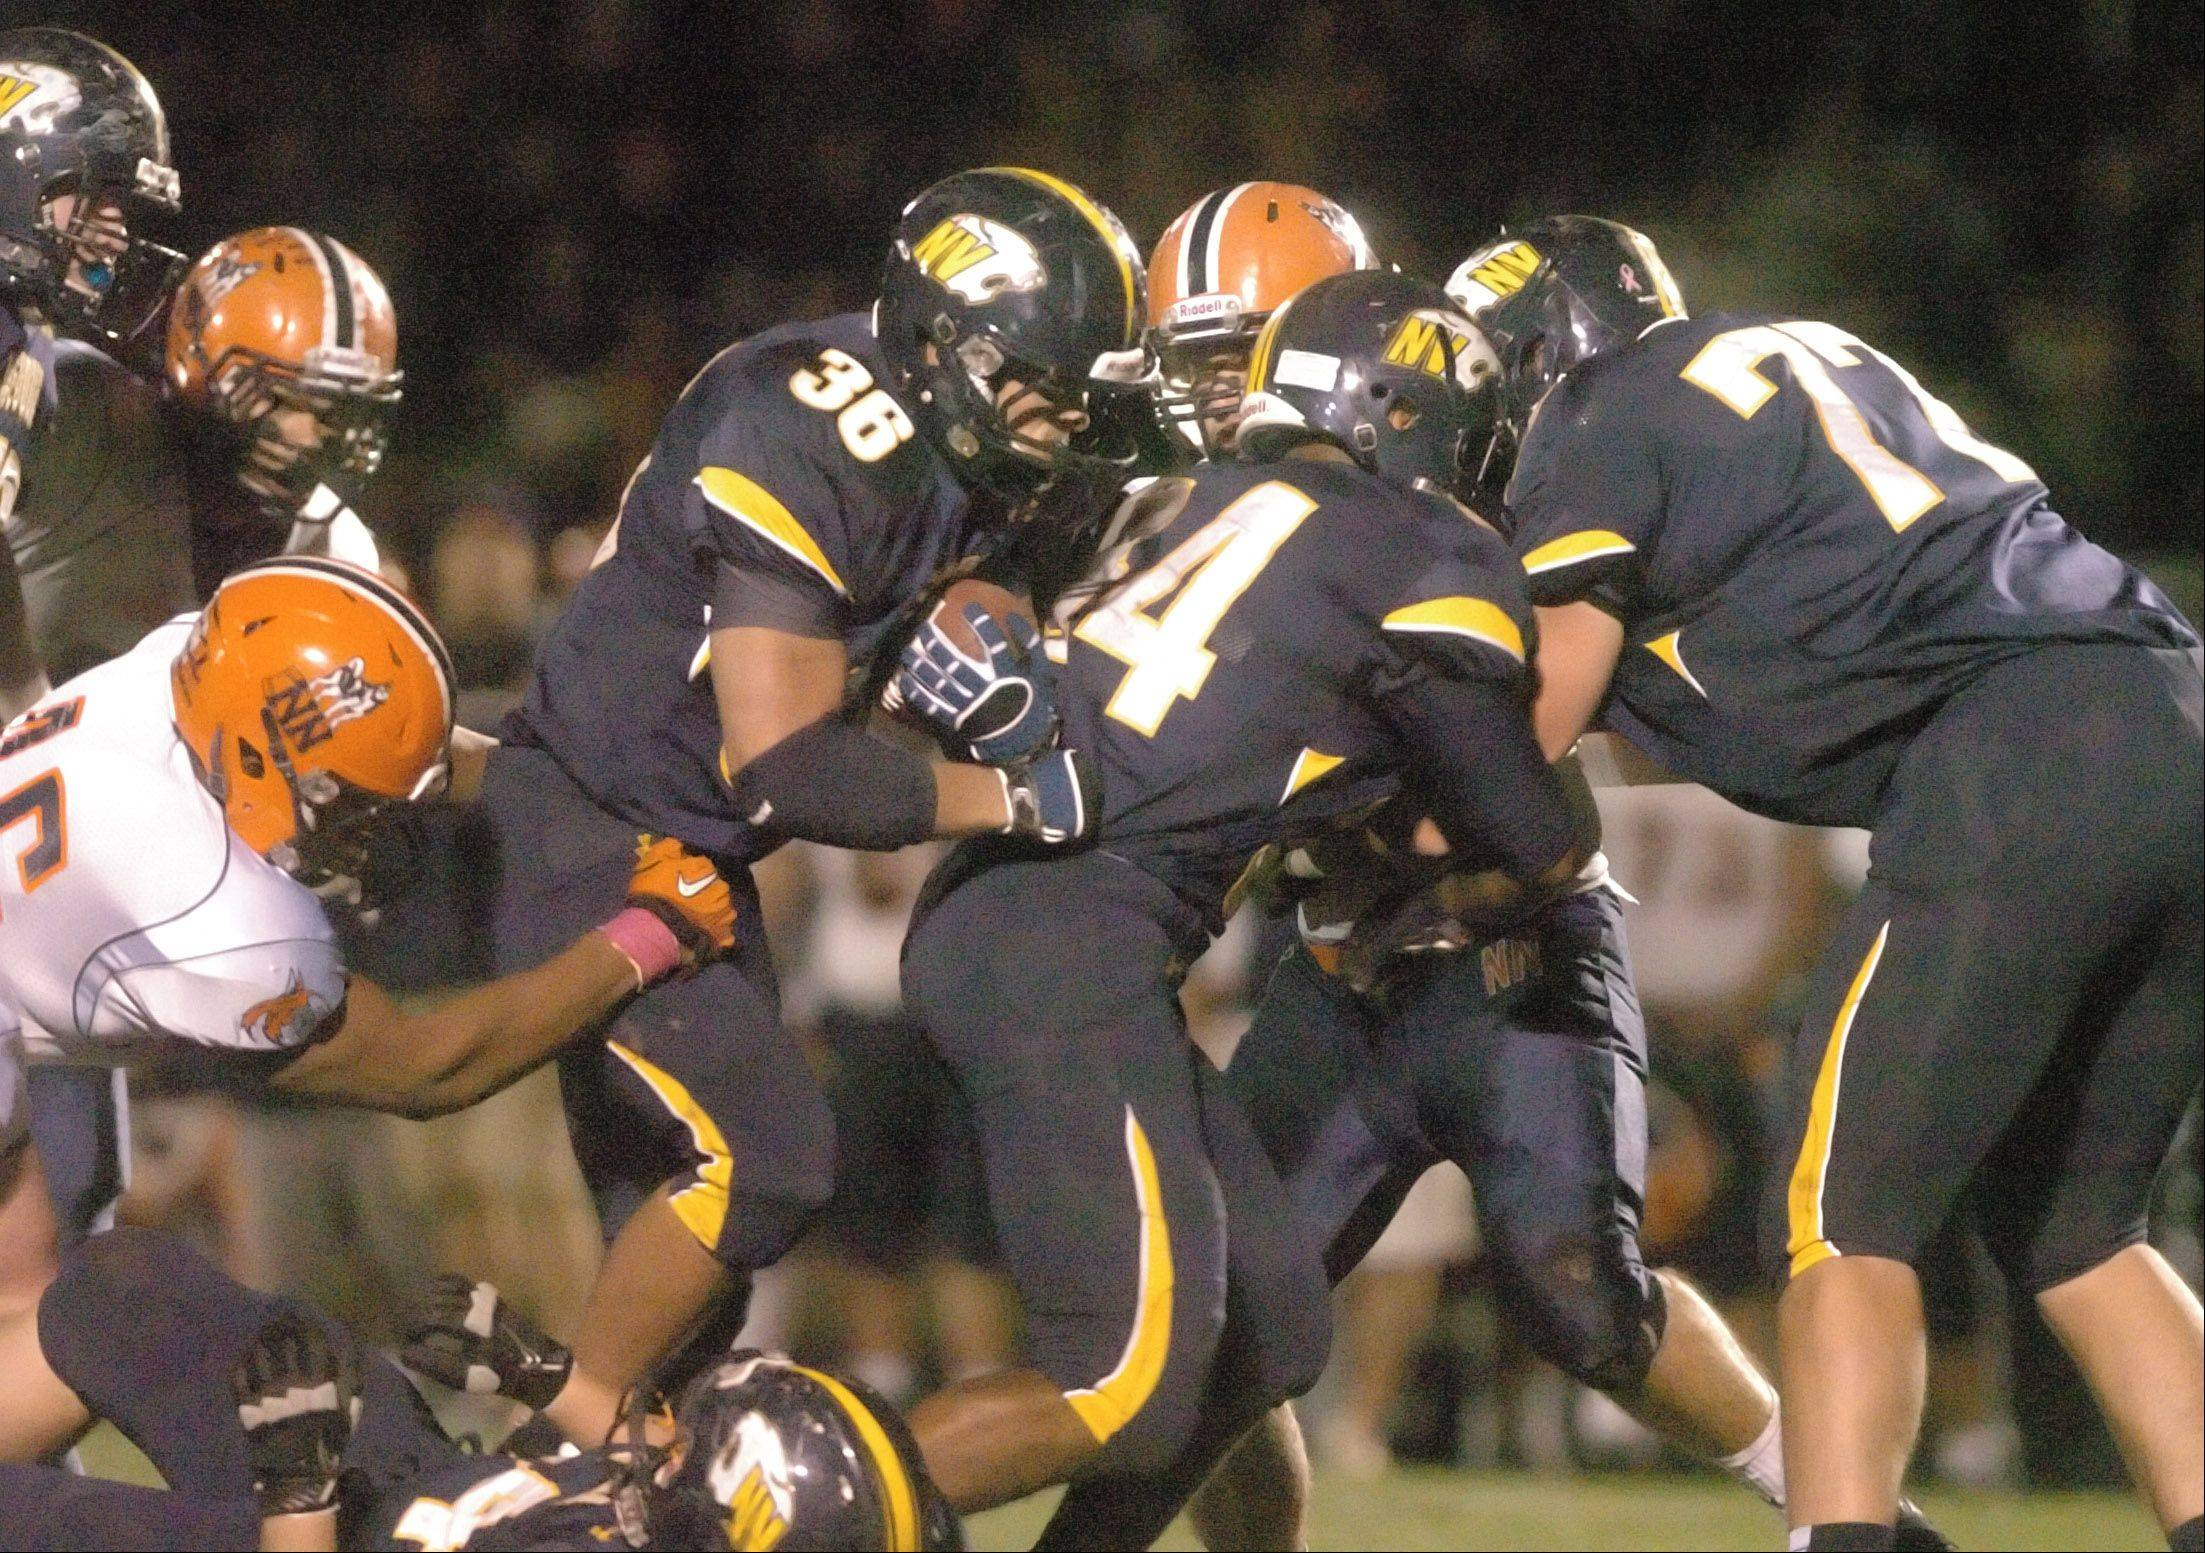 Joey Rhattigan of Neuqua,center, moves the ball during the Naperville North at Neuqua Valley football game Friday.